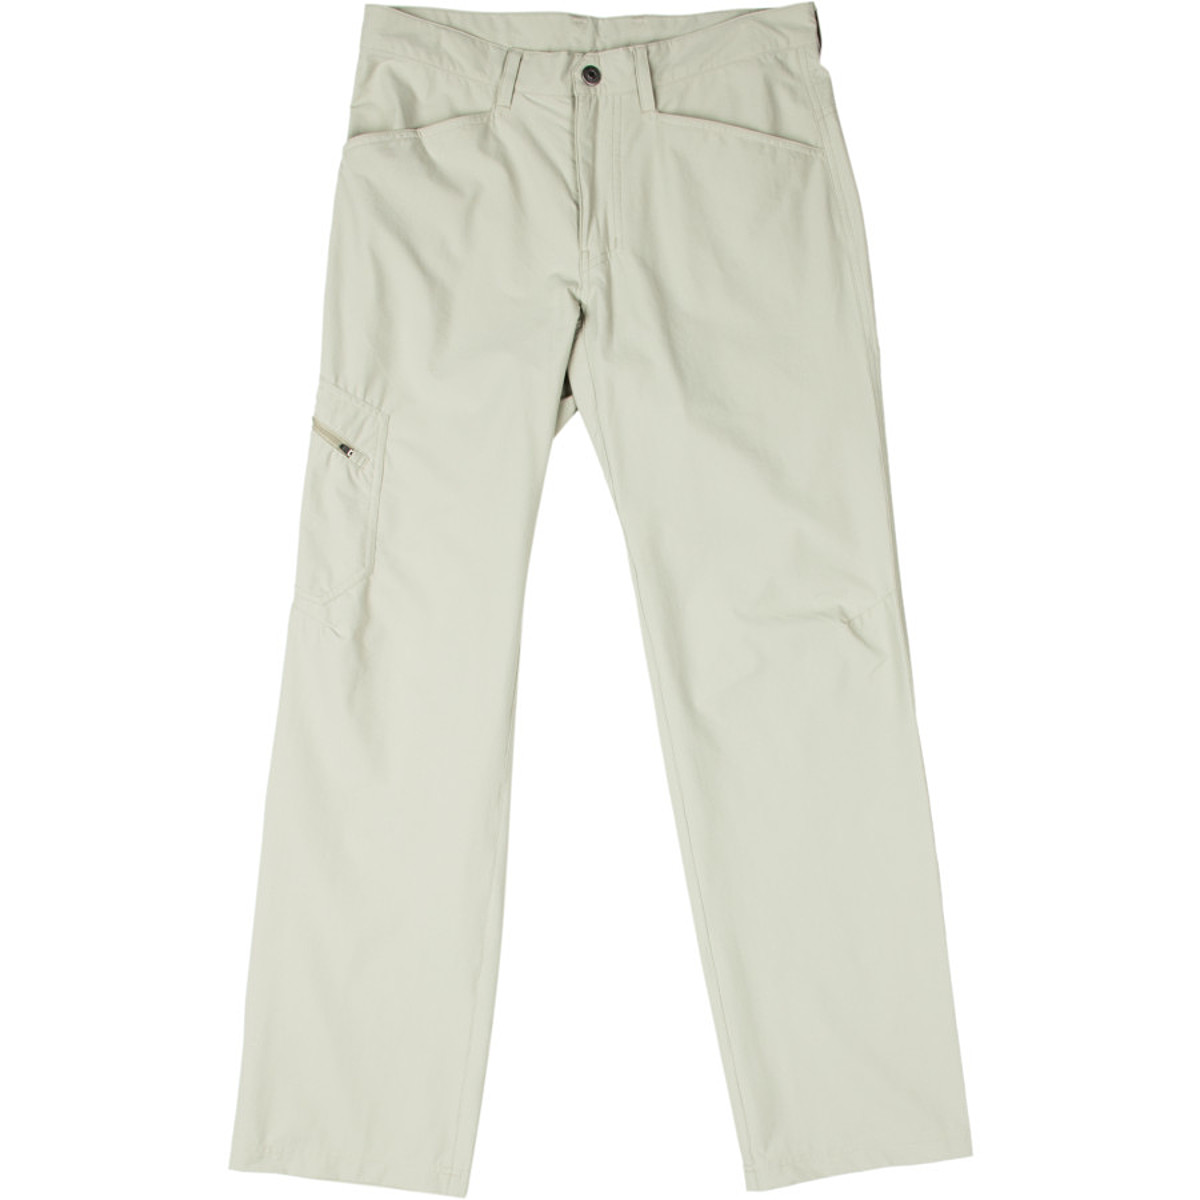 Patagonia Rock Craft Pants